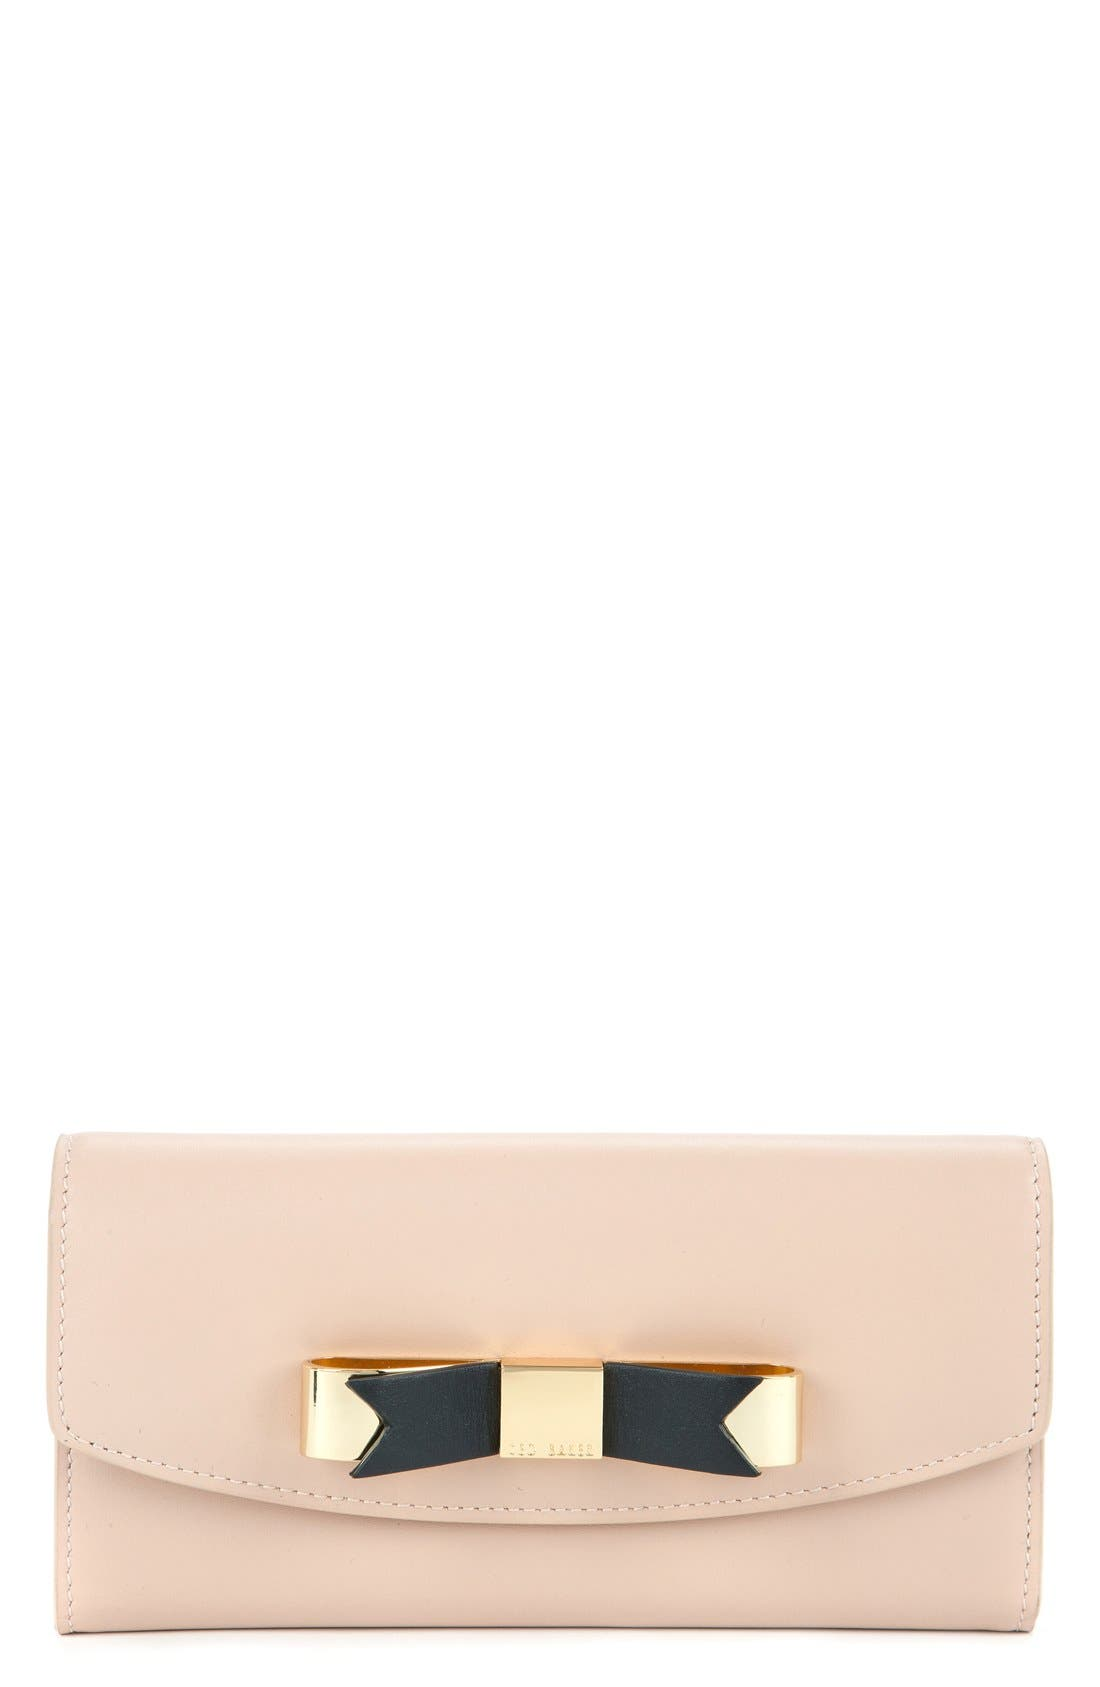 Alternate Image 1 Selected - Ted Baker London Leather Bow Wallet